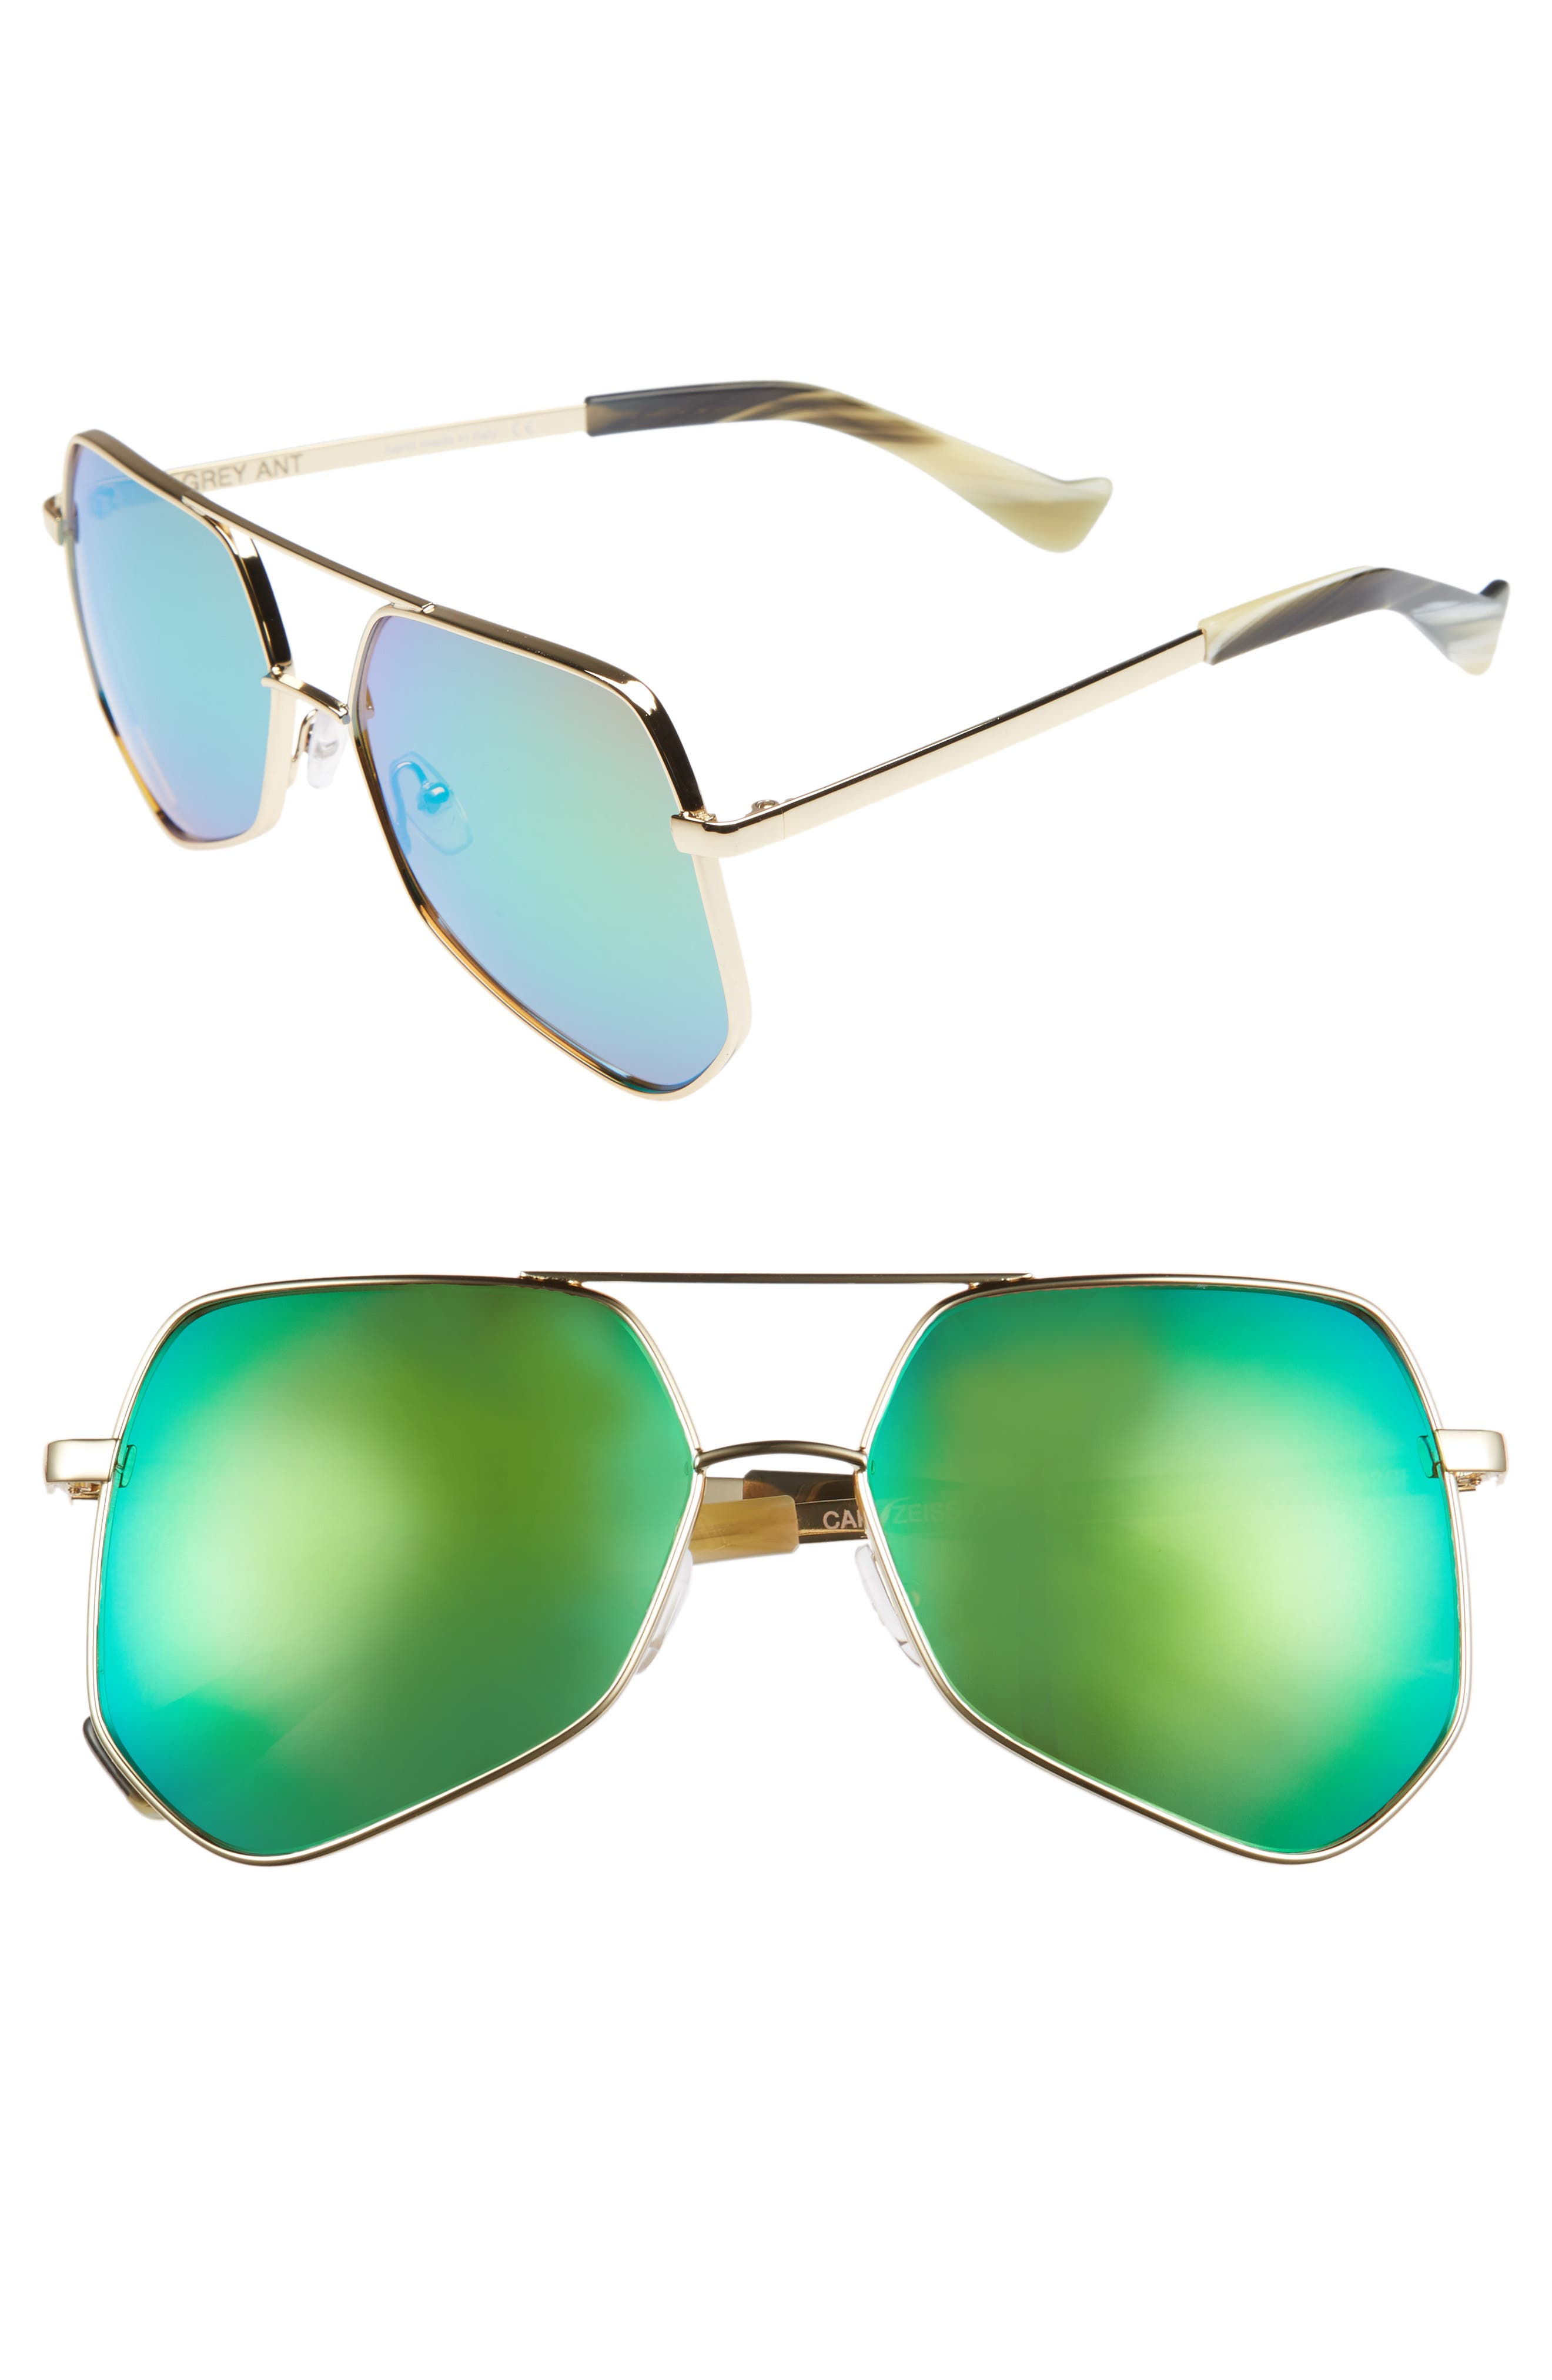 Grey Ant Megalast Ii 55Mm Sunglasses - Green Lens/ Gold Hardware